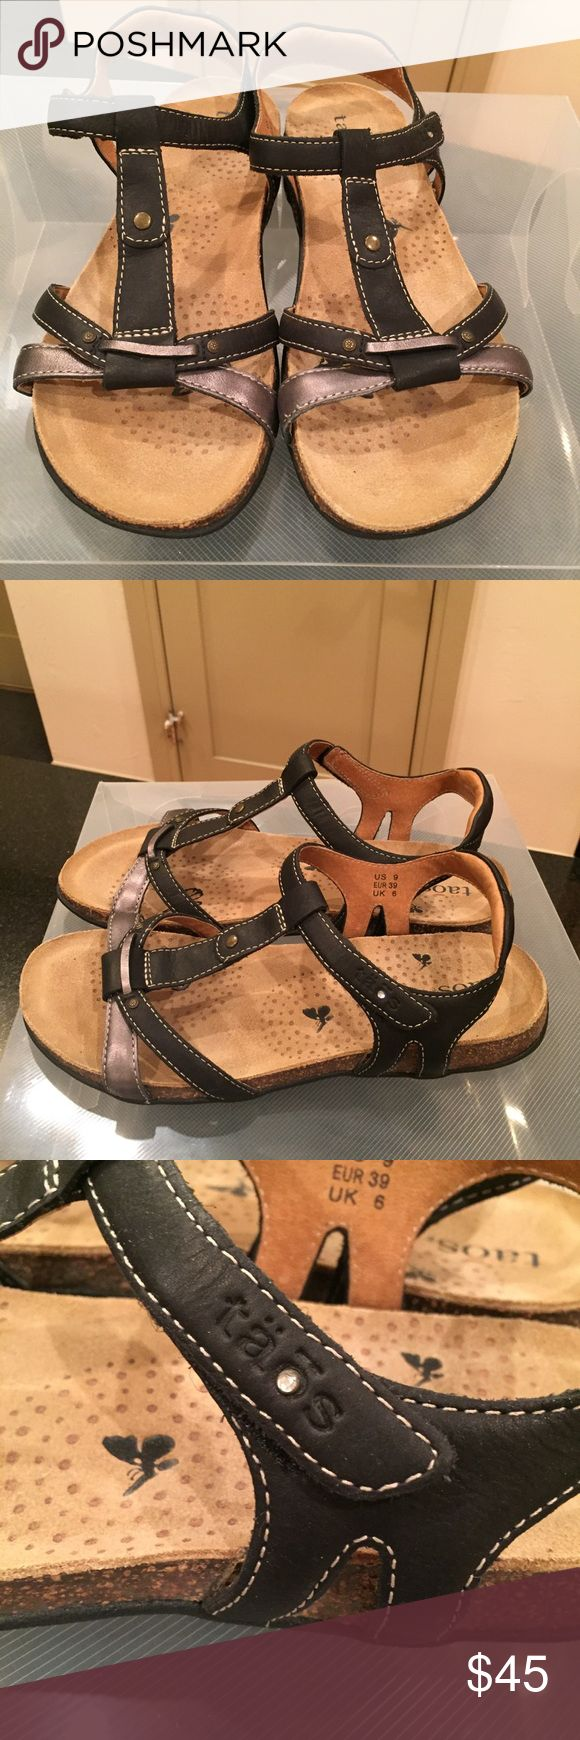 TAOS Leather black & pewter sandals in size 9 EUC! These are so cute but they're a bit too big for me.  I've worn them once.  Leather Black & Gray TAOS sandals with super comfortable sole & a bit of padding on the back ankle strap.  My mistake size could be just right for you!  They have a super easy velcro closing that doesn't look velcrowy;)  Thanks for looking at my auction! Taos Footwear Shoes Sandals